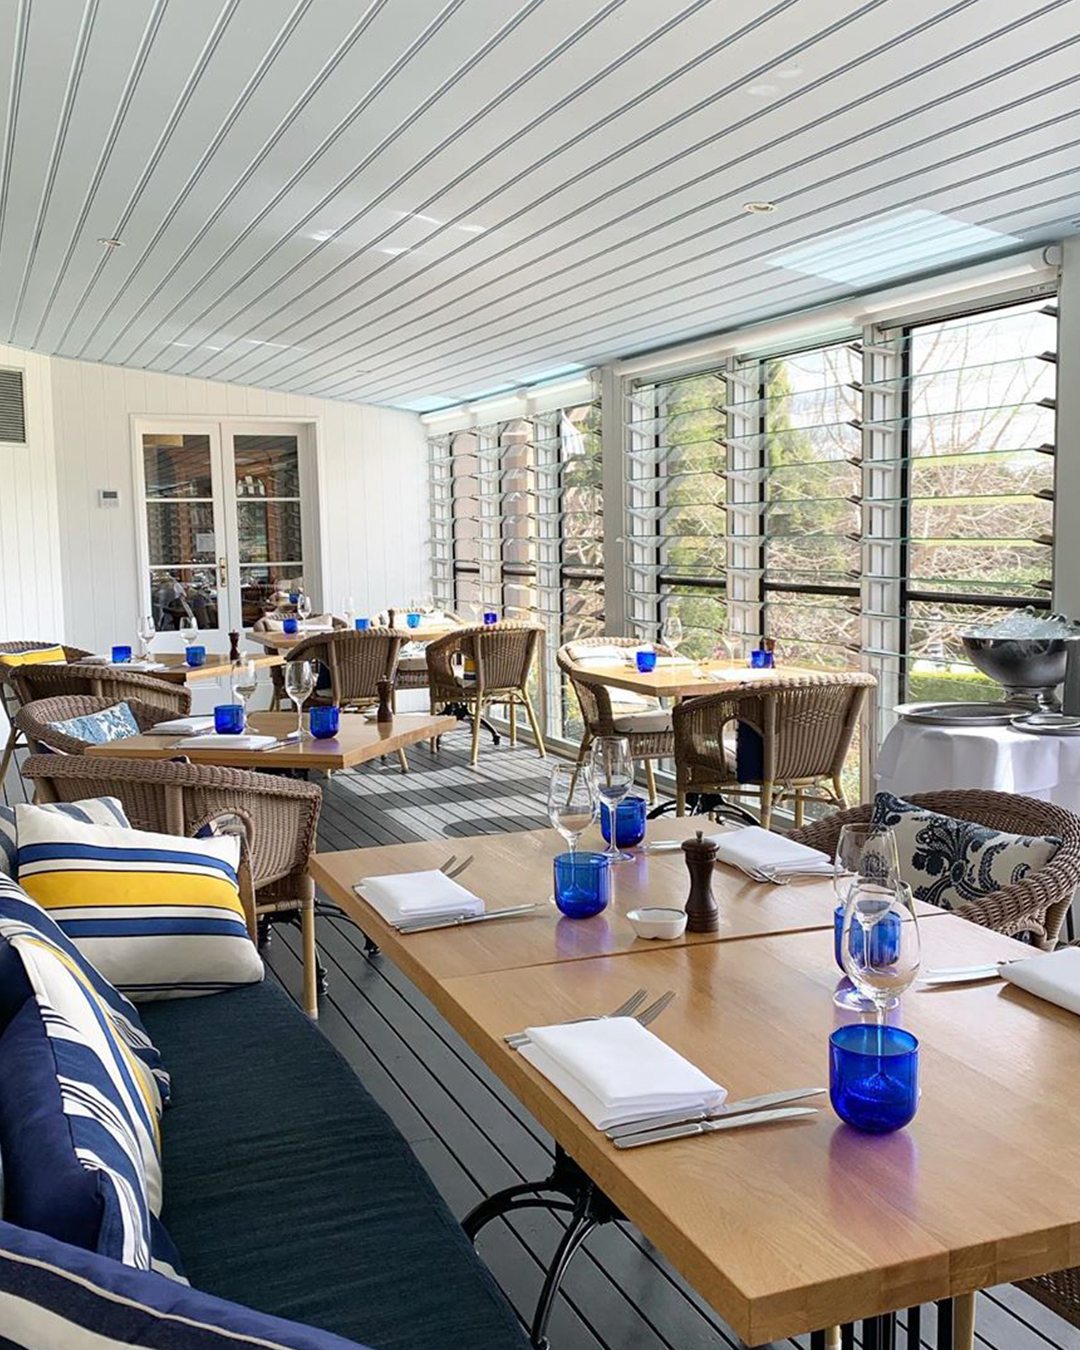 A spacious dining area on the verandah with nautical-style soft furnishings and blue glasses.